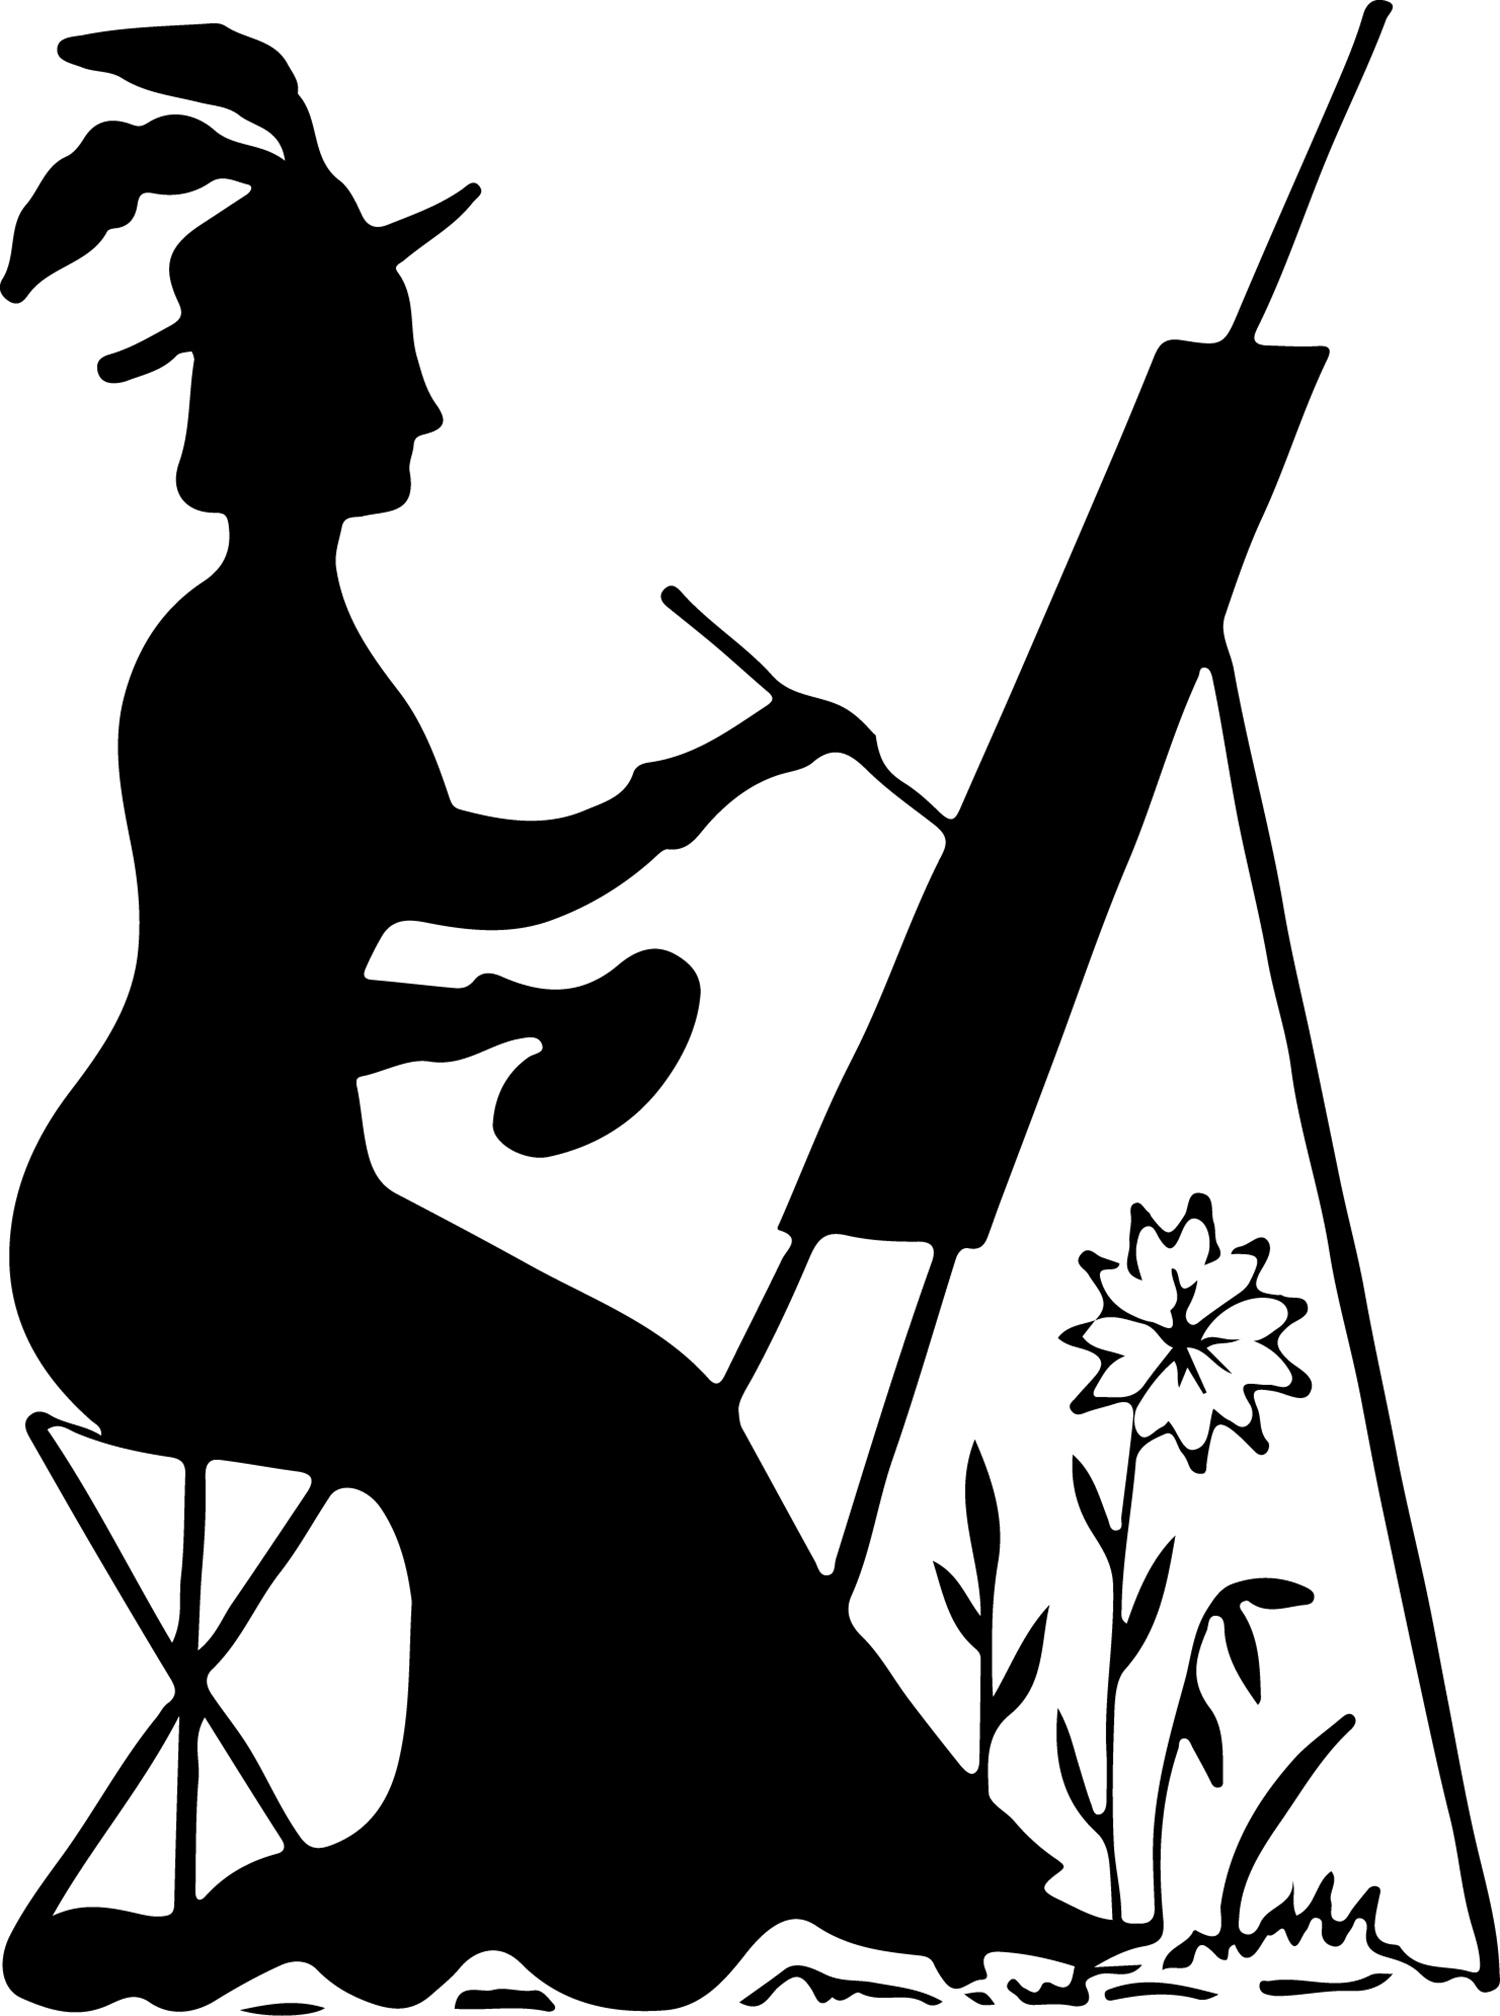 Silhouette Stock Image - Lady Painting - The Graphics Fairy ...